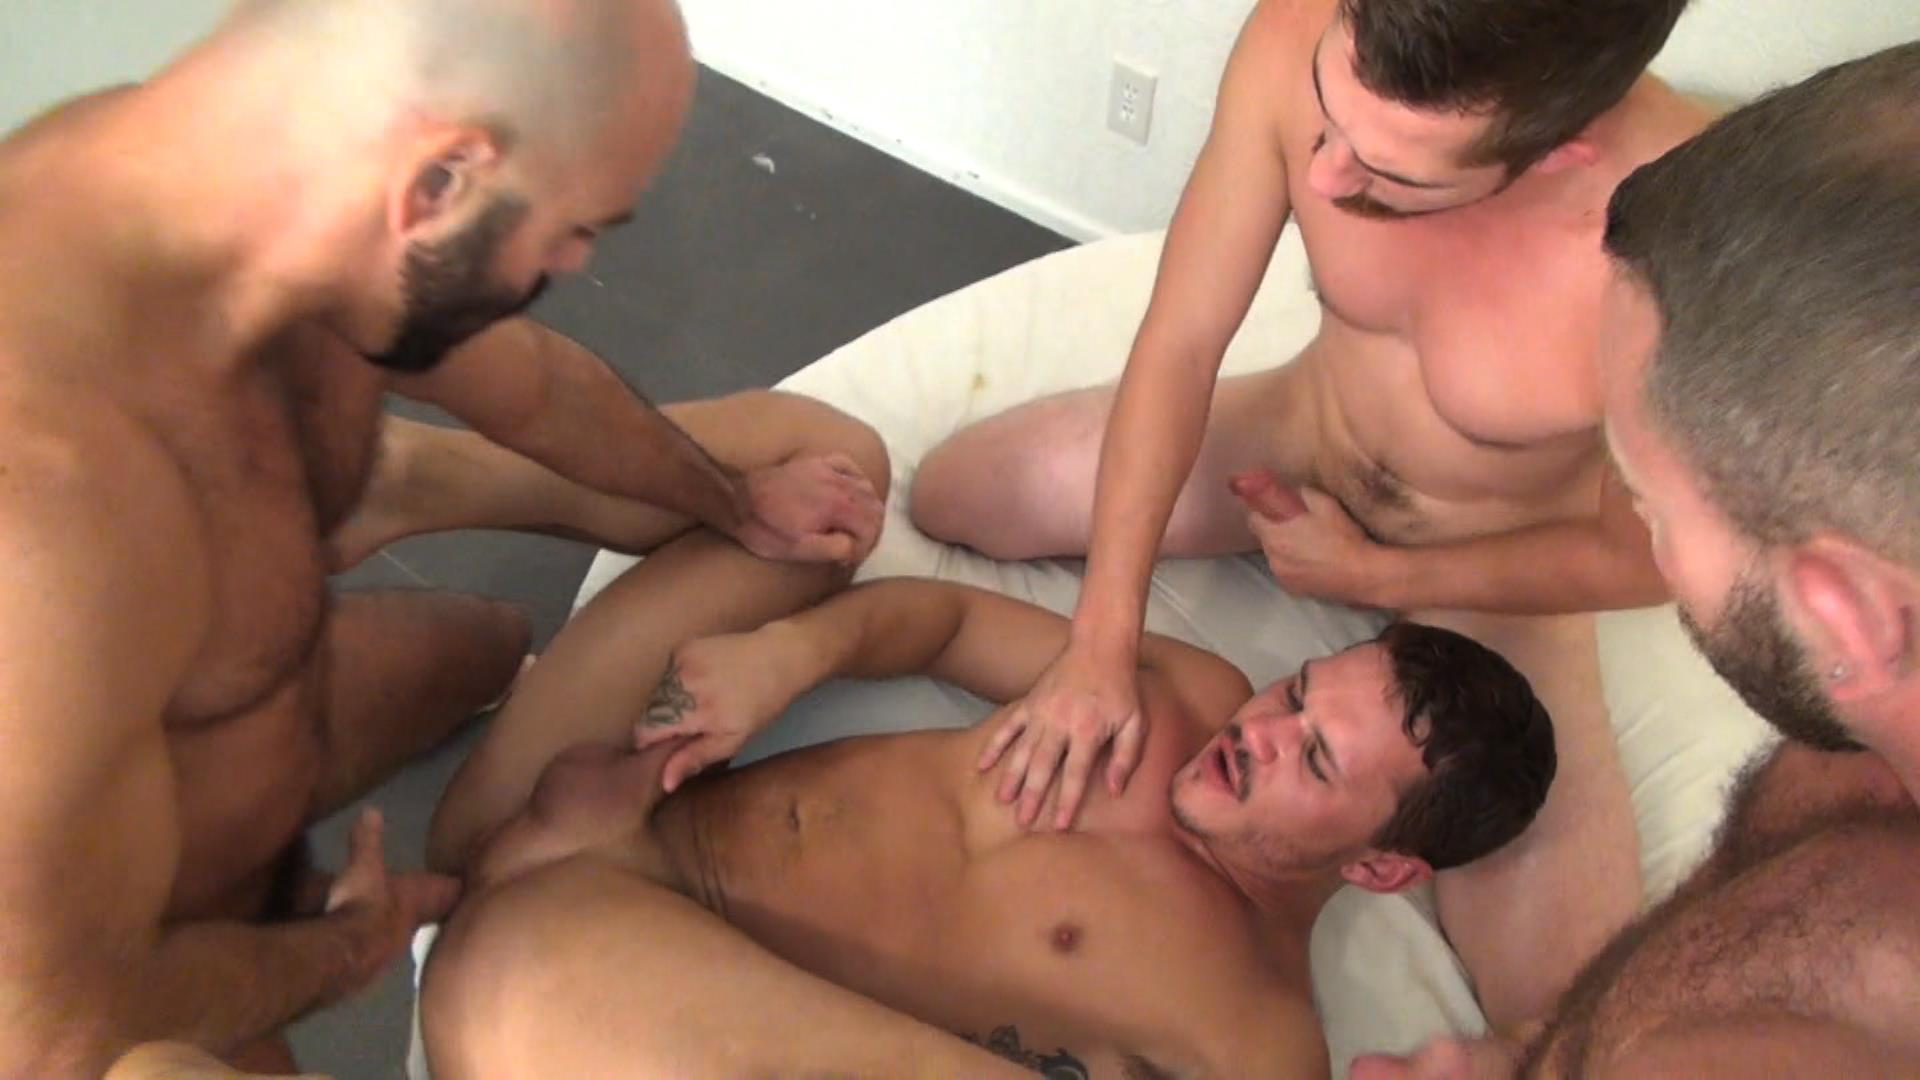 3 way/orgy pics [archive] - bisexual